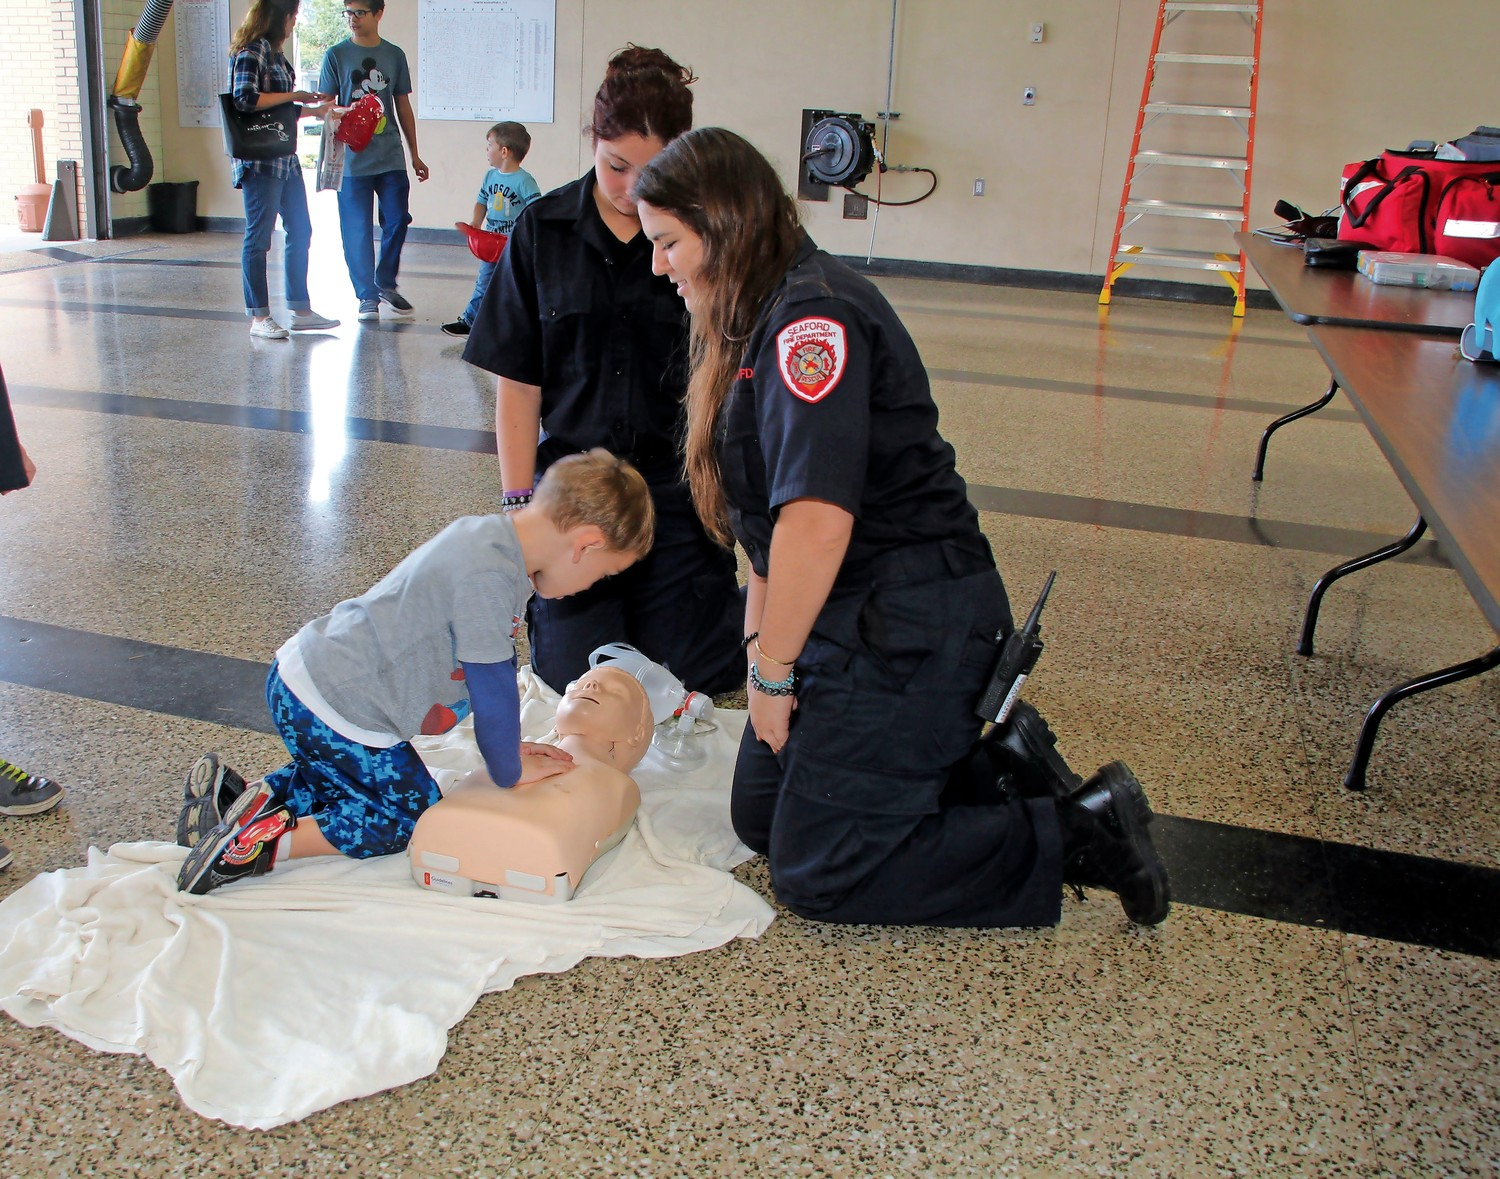 Conor Valentine, 5, gets instructions from Fire Medic Morgan Chipurnoi and Nicole Esposito, a fire medic in training.